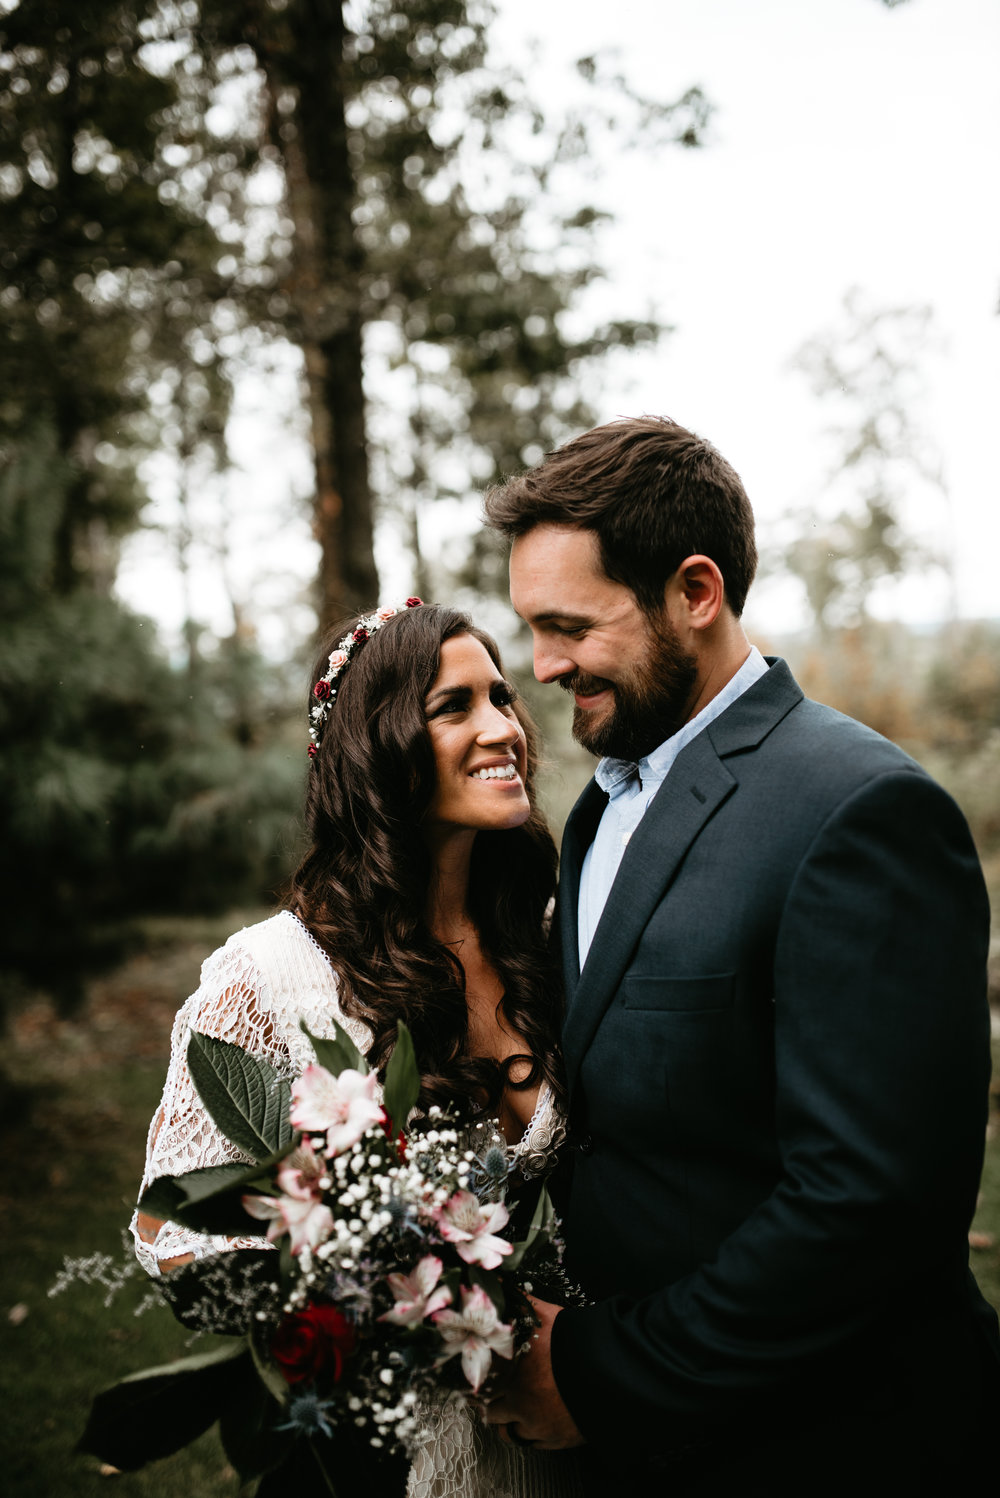 Destination elopement photographer in Dallas, PA